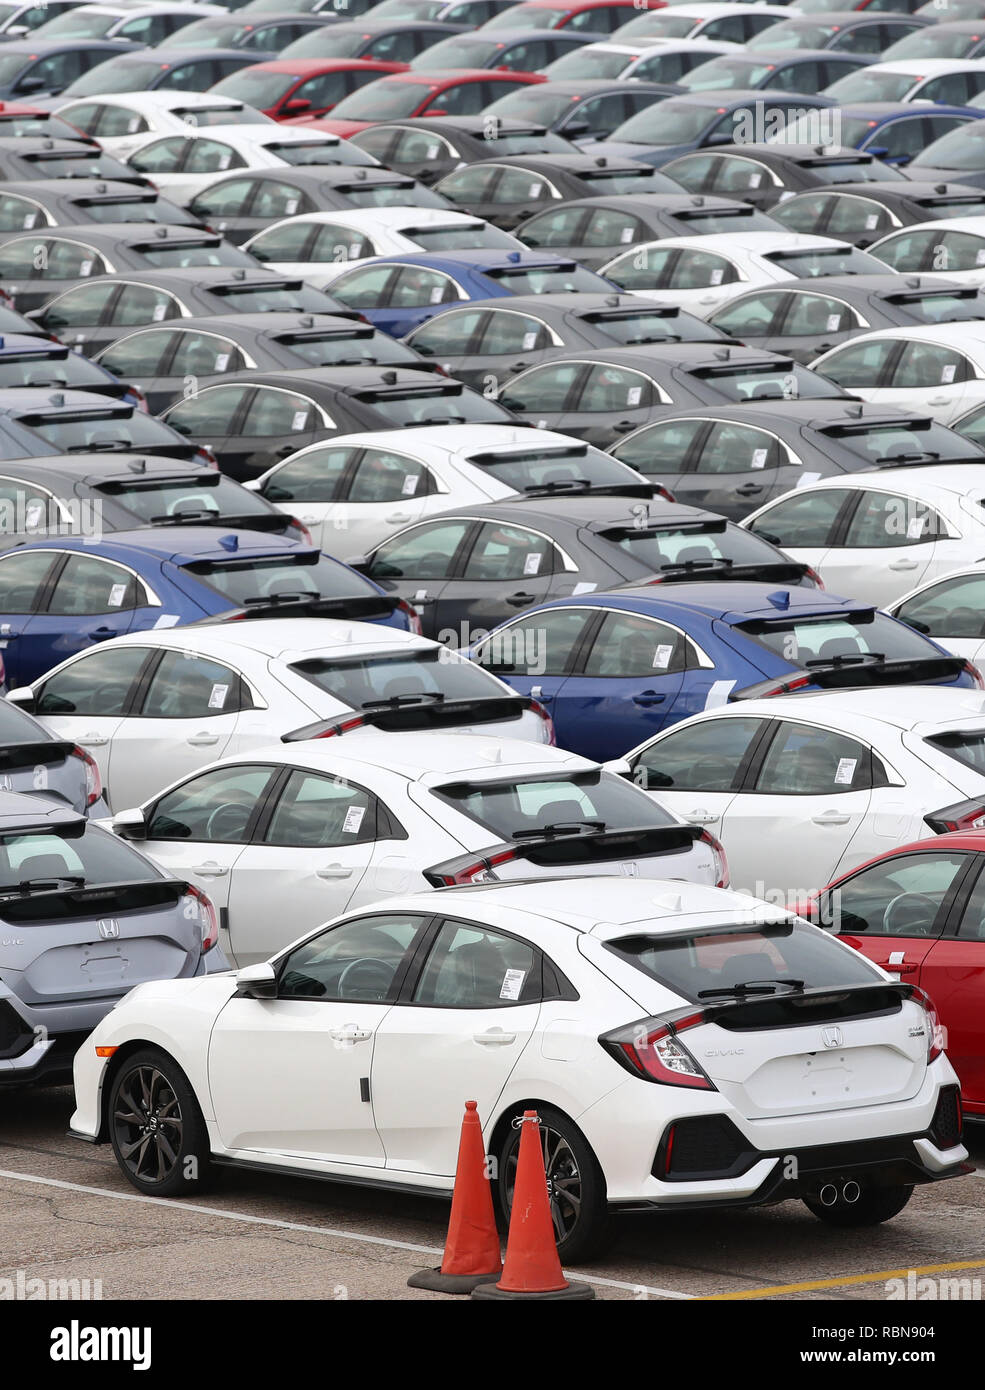 Honda Cars Lined Up At Southampton Docks Prior To Being Loaded Onto